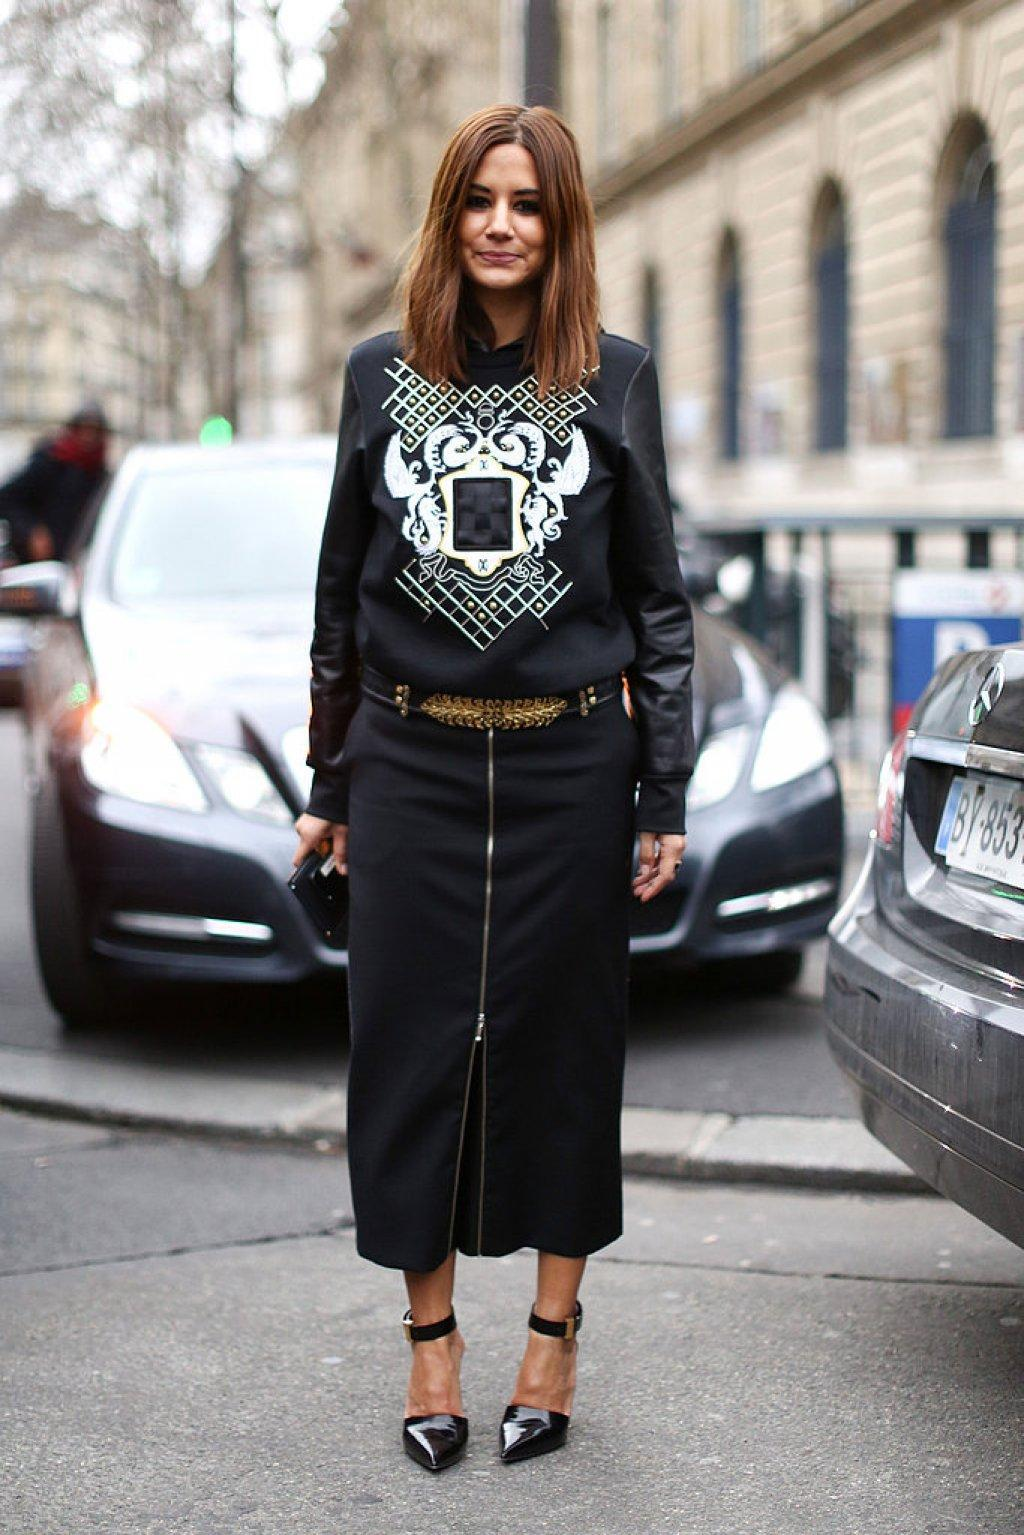 pfw-fall-2013-christine-centenera-streetstyle-balmain-black-white-sweater